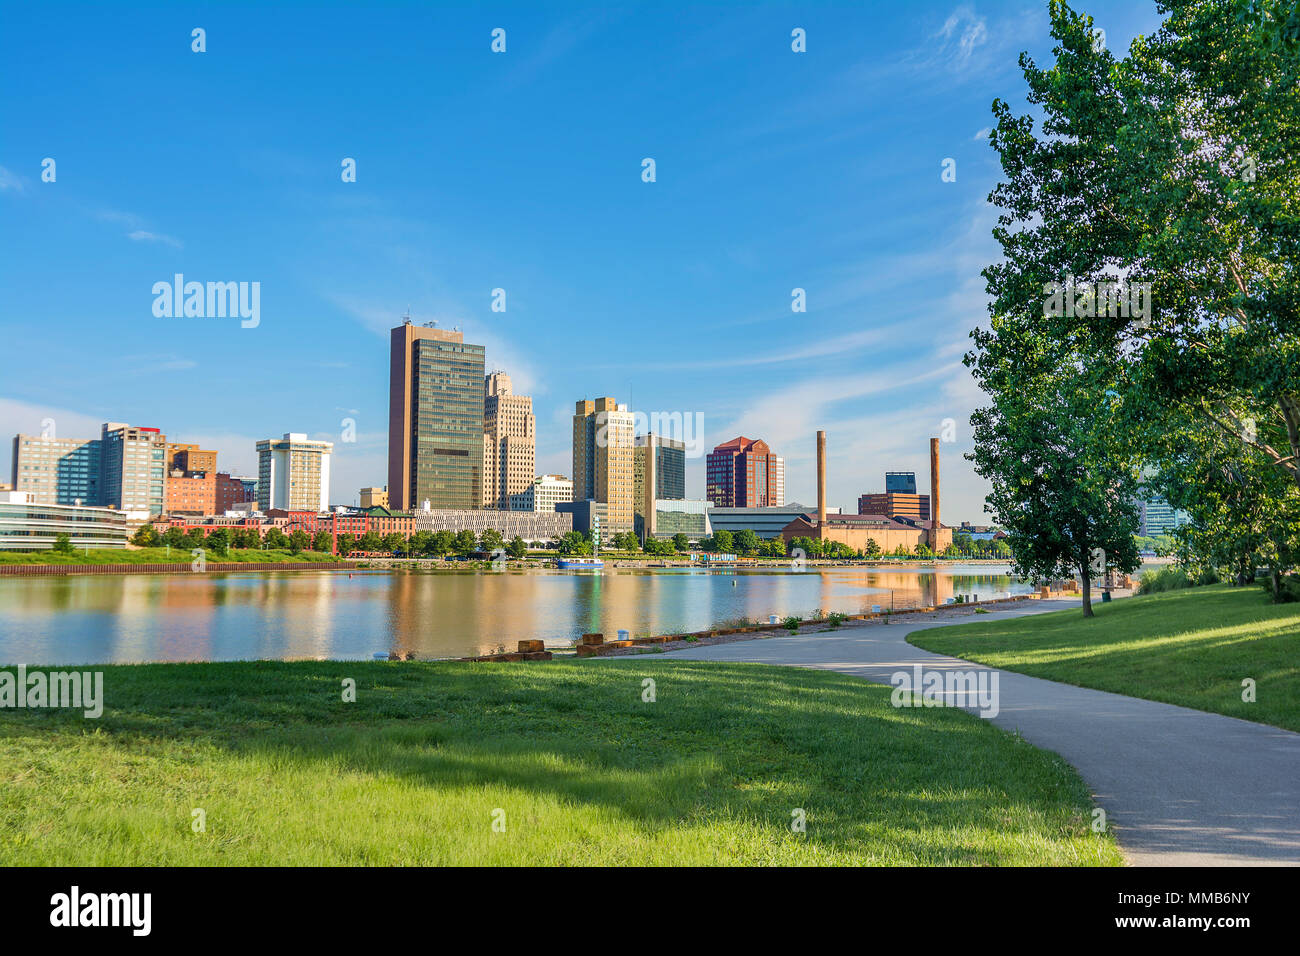 A panoramic view of downtown Toledo Ohio's skyline from across the Maumee river at a popular public park. Stock Photo